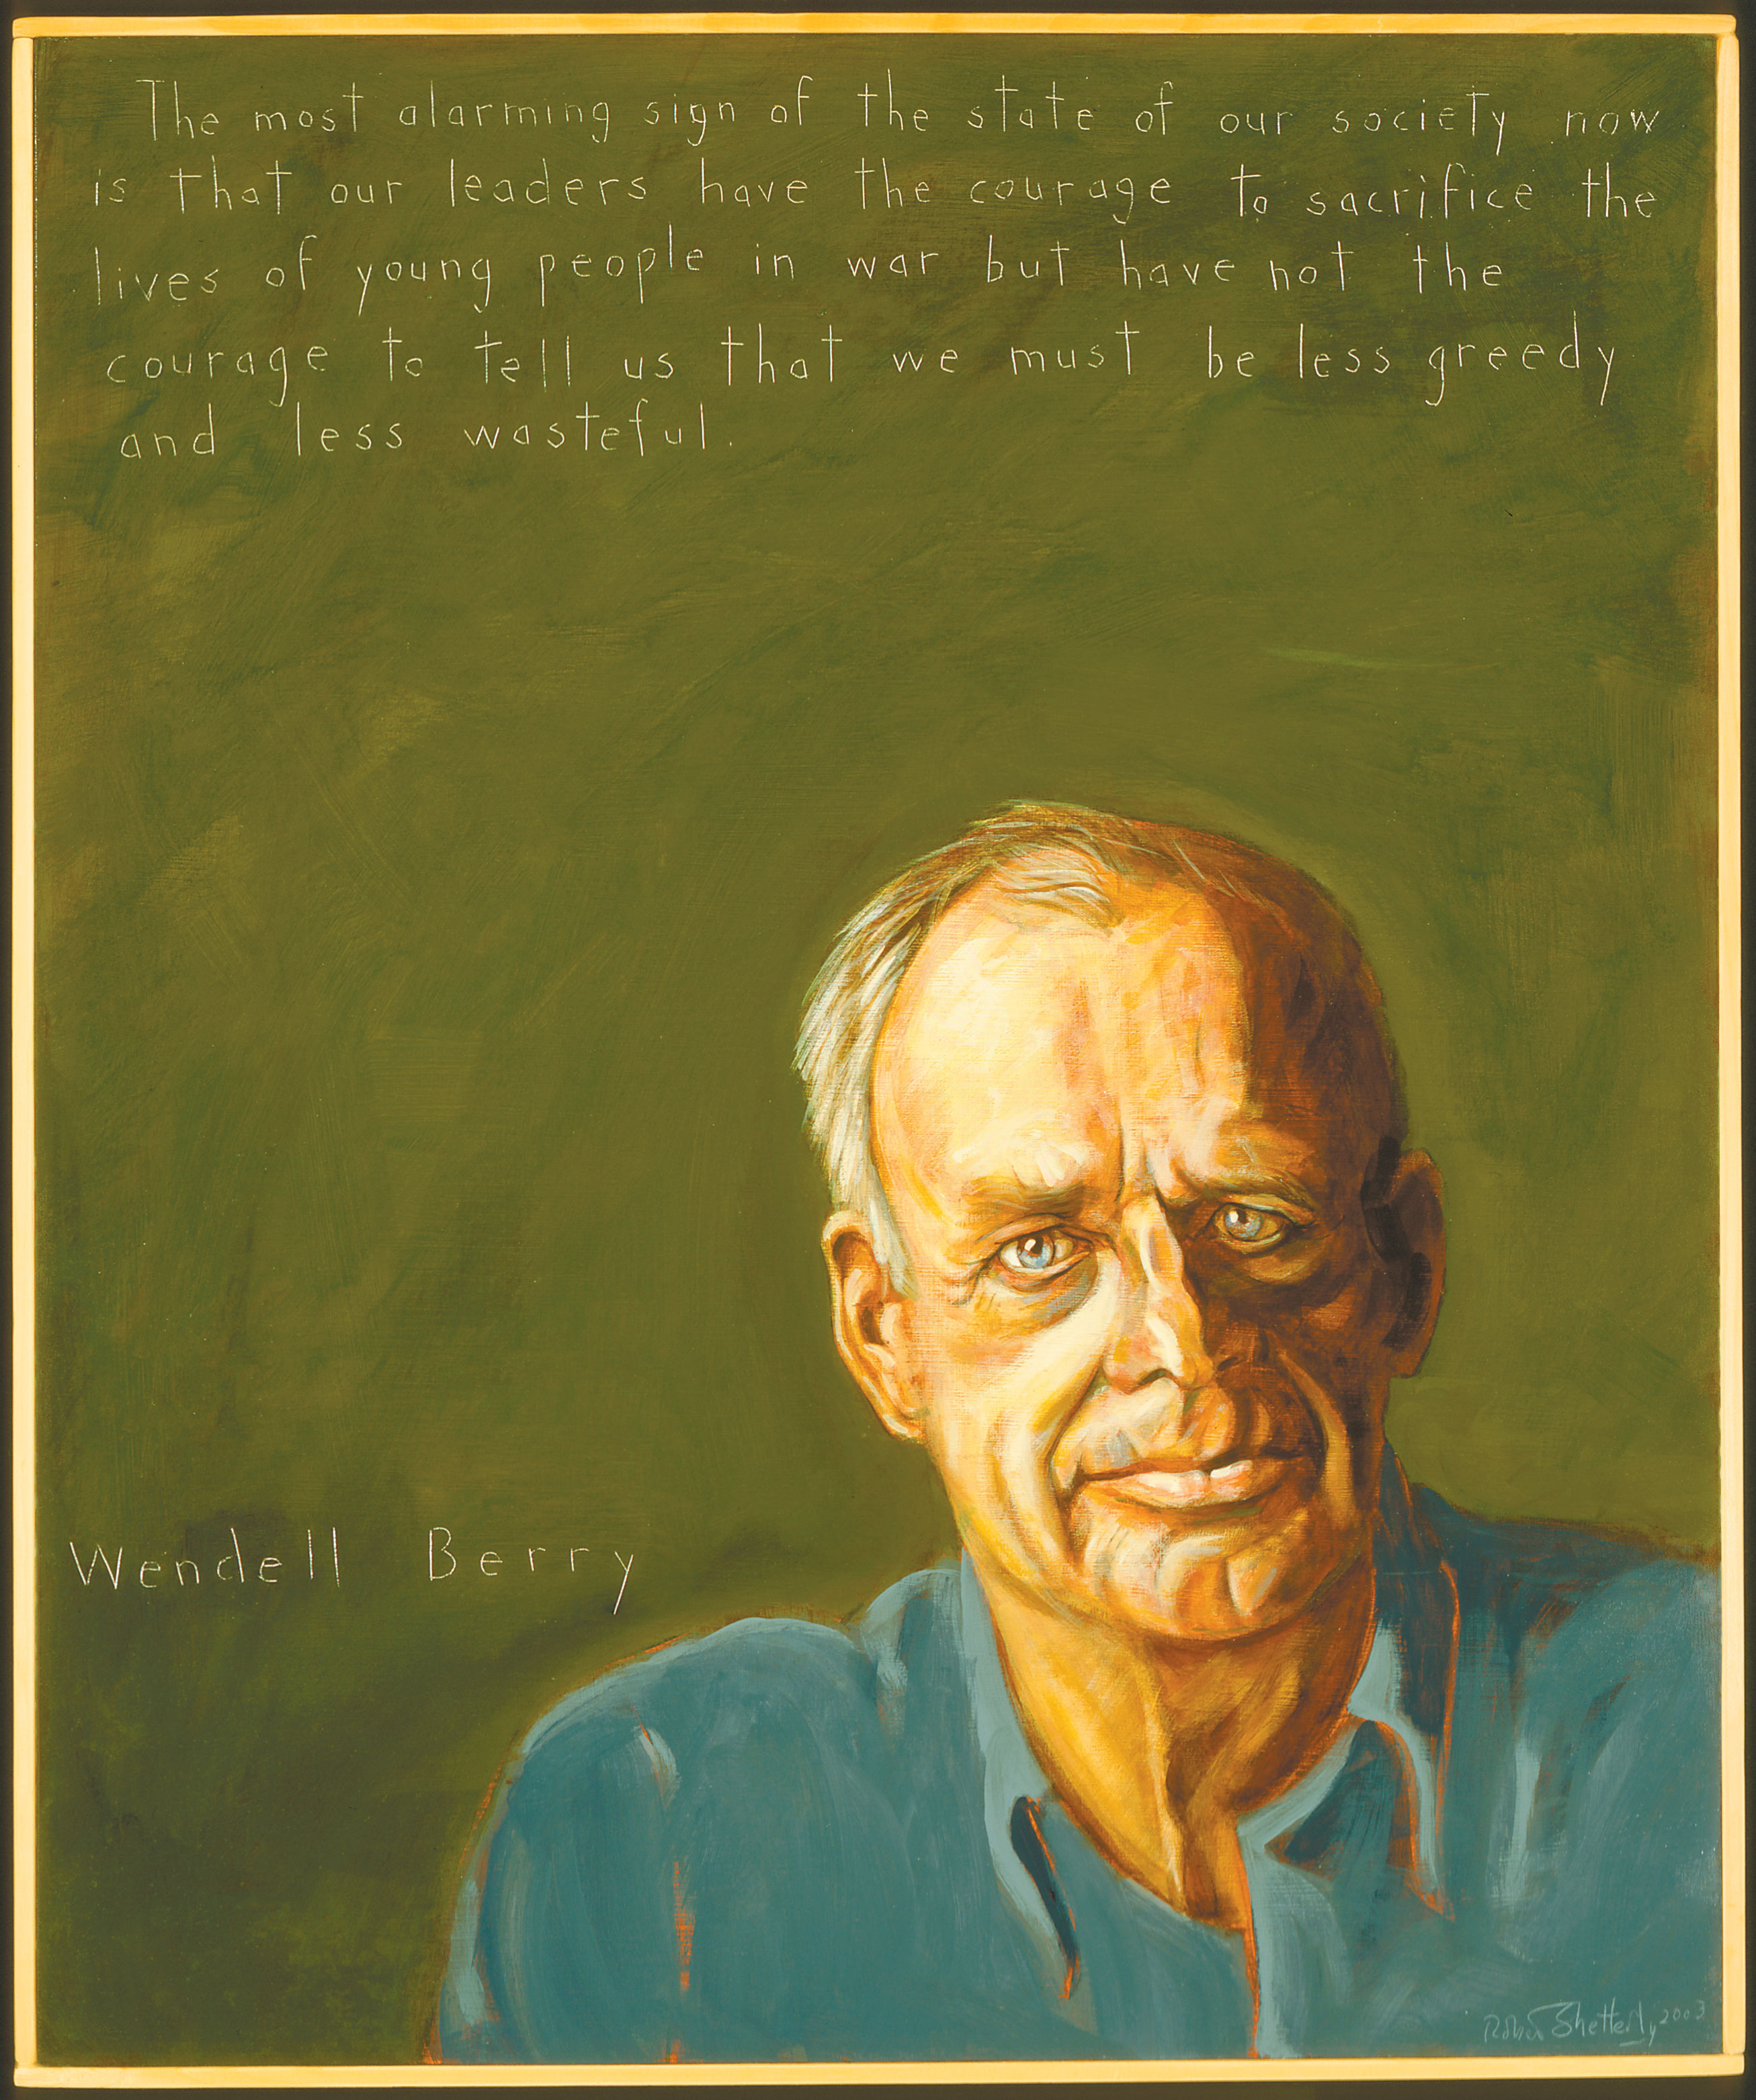 the removalists essay richard nixon essay richard nixon essay  wendell berry essay wendell berrys use of butconstructions in wendell berry s use of but constructions